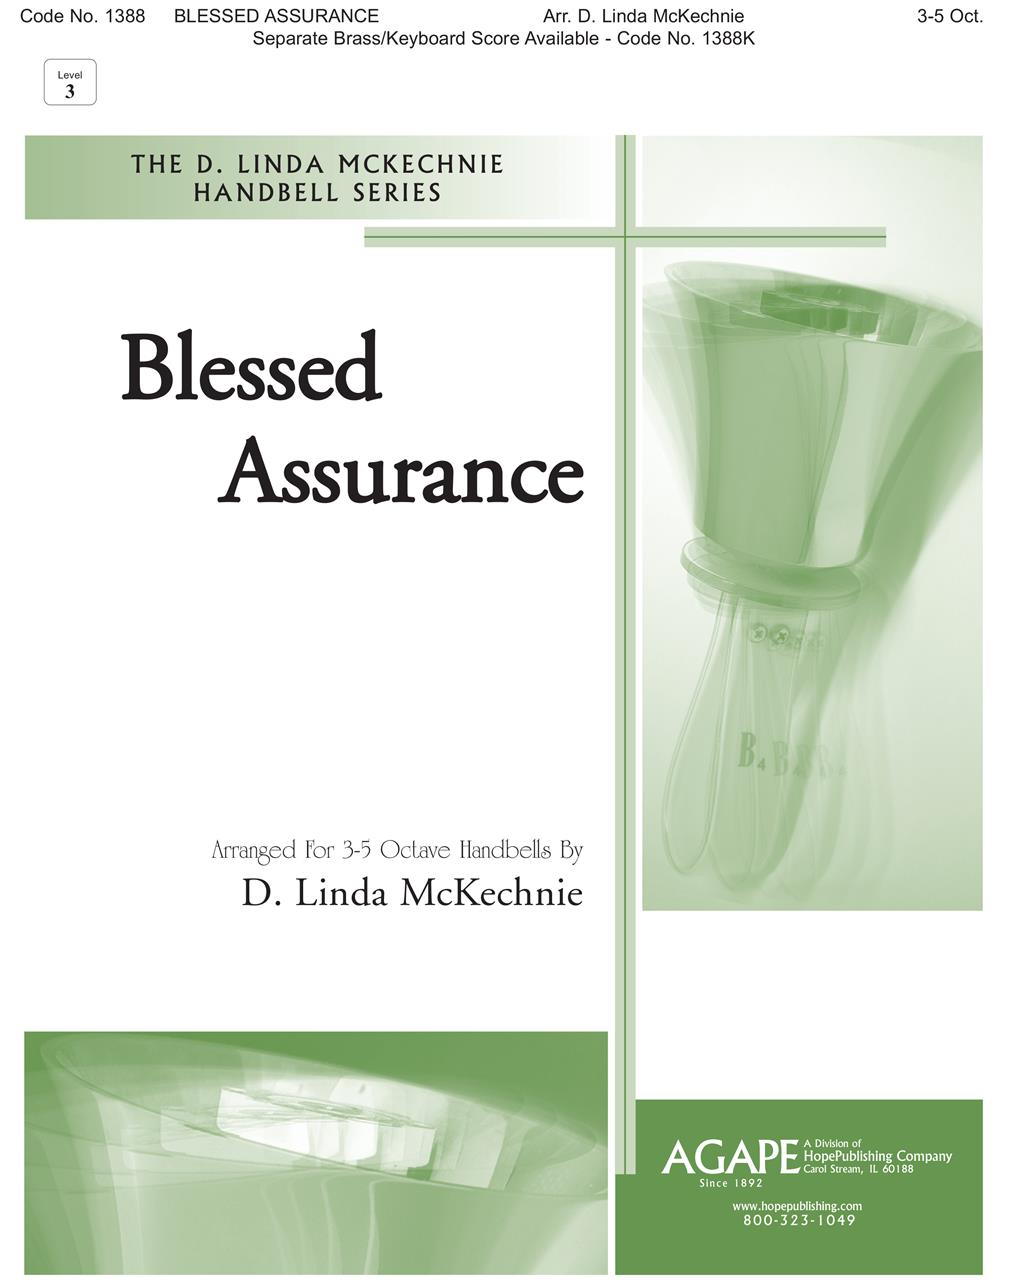 Blessed Assurance - 3-5 Octave Cover Image